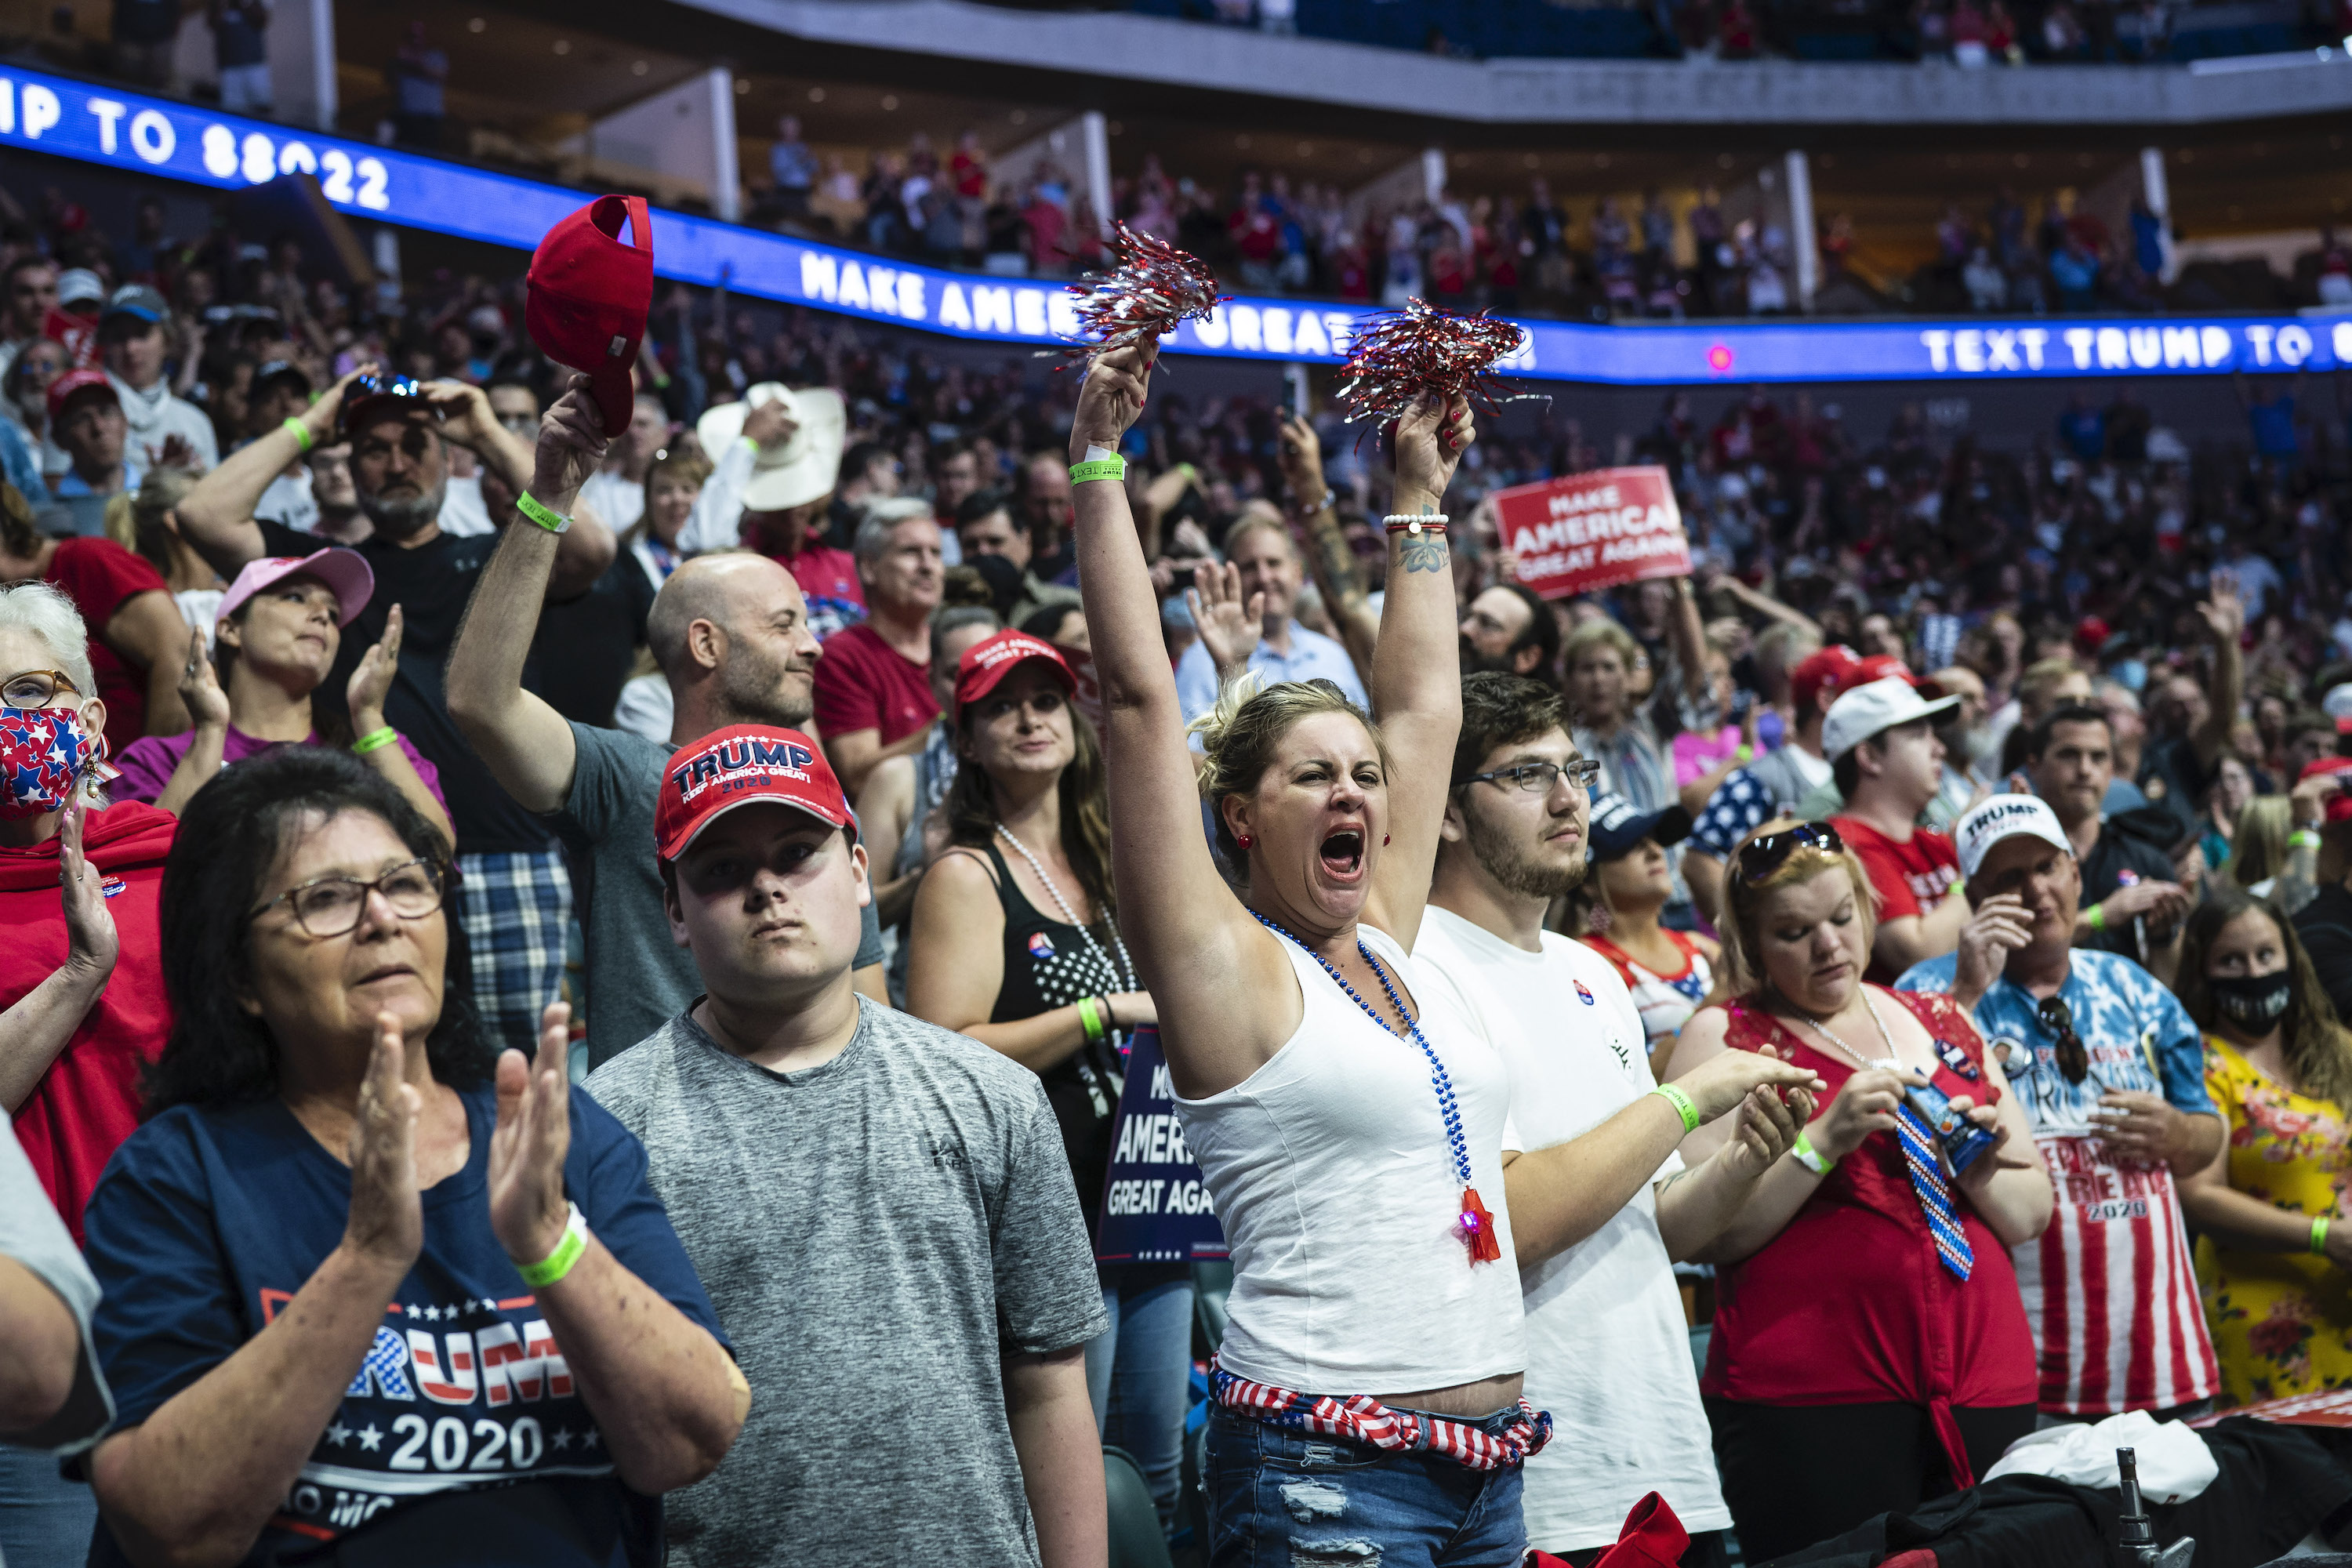 Supporters cheer before President Donald J. Trump arrives, many without masks, for a  Make America Great Again!  rally at the BOK Center on June 20, 2020 in Tulsa, OK.